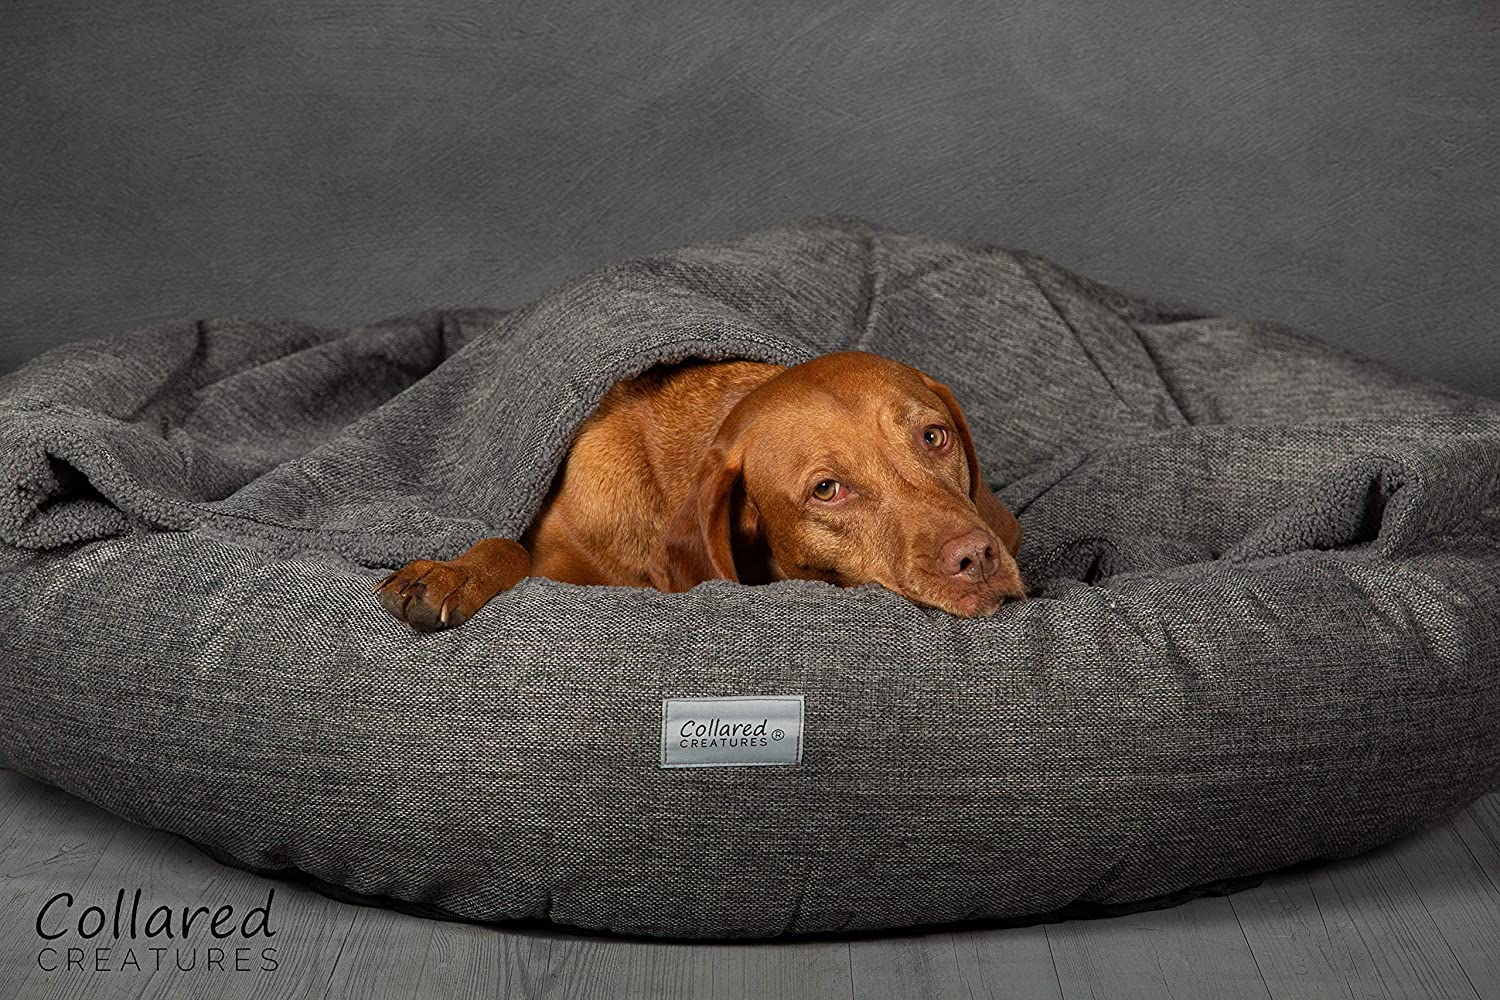 Collared Creatures Comfort Cocoon - Cama para perro 900 mm, color gris: Amazon.es: Productos para mascotas